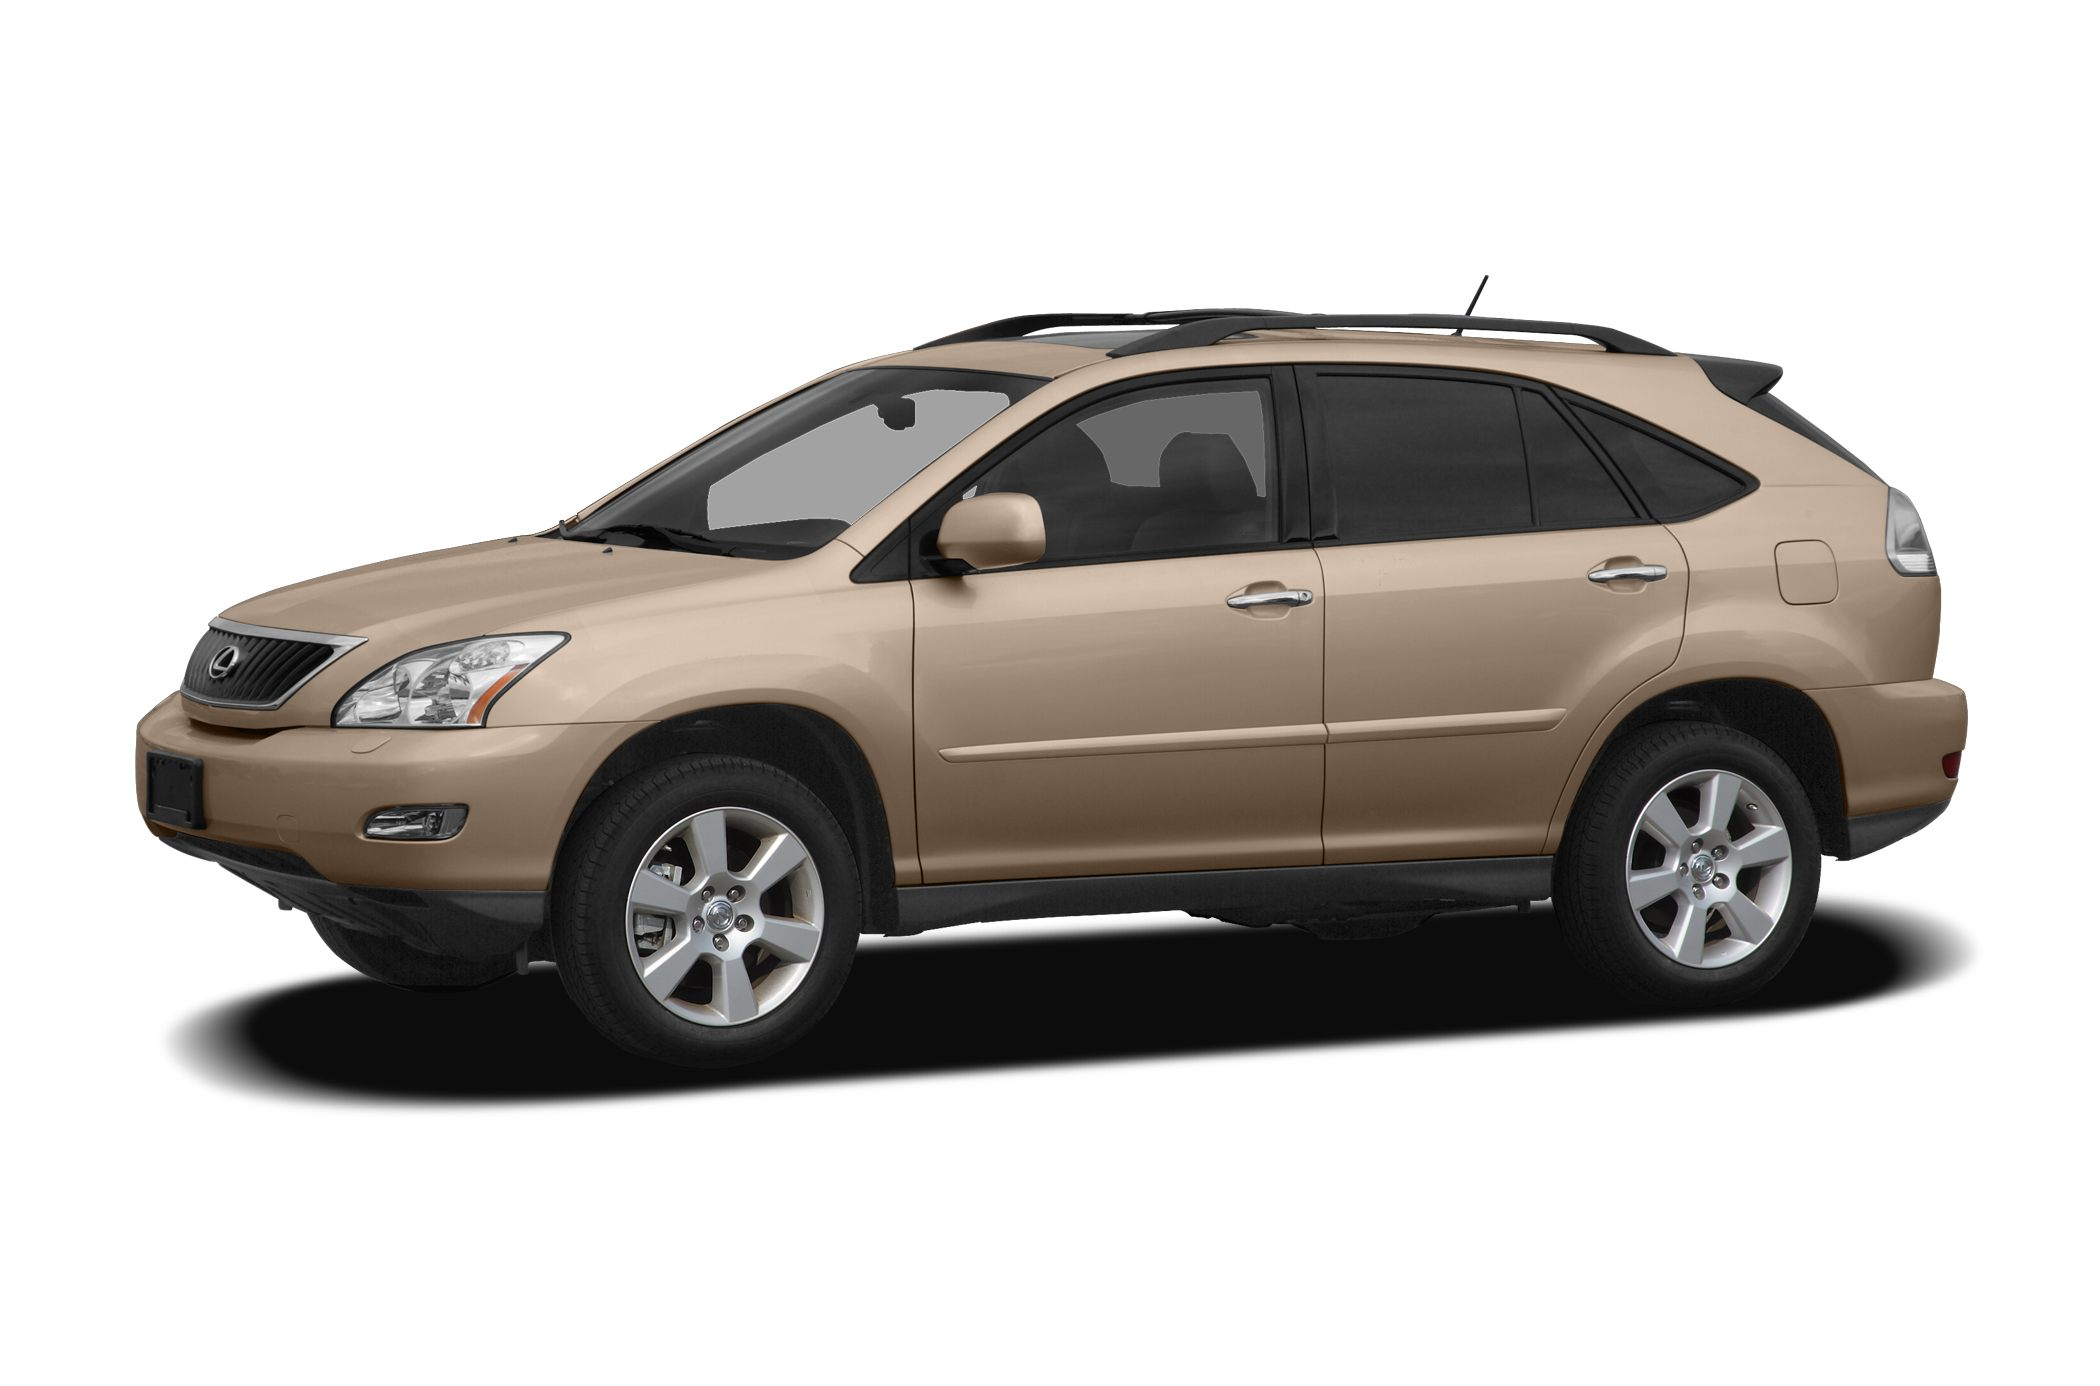 2009 Lexus RX 350 SUV for sale in Houston for $21,999 with 53,777 miles.